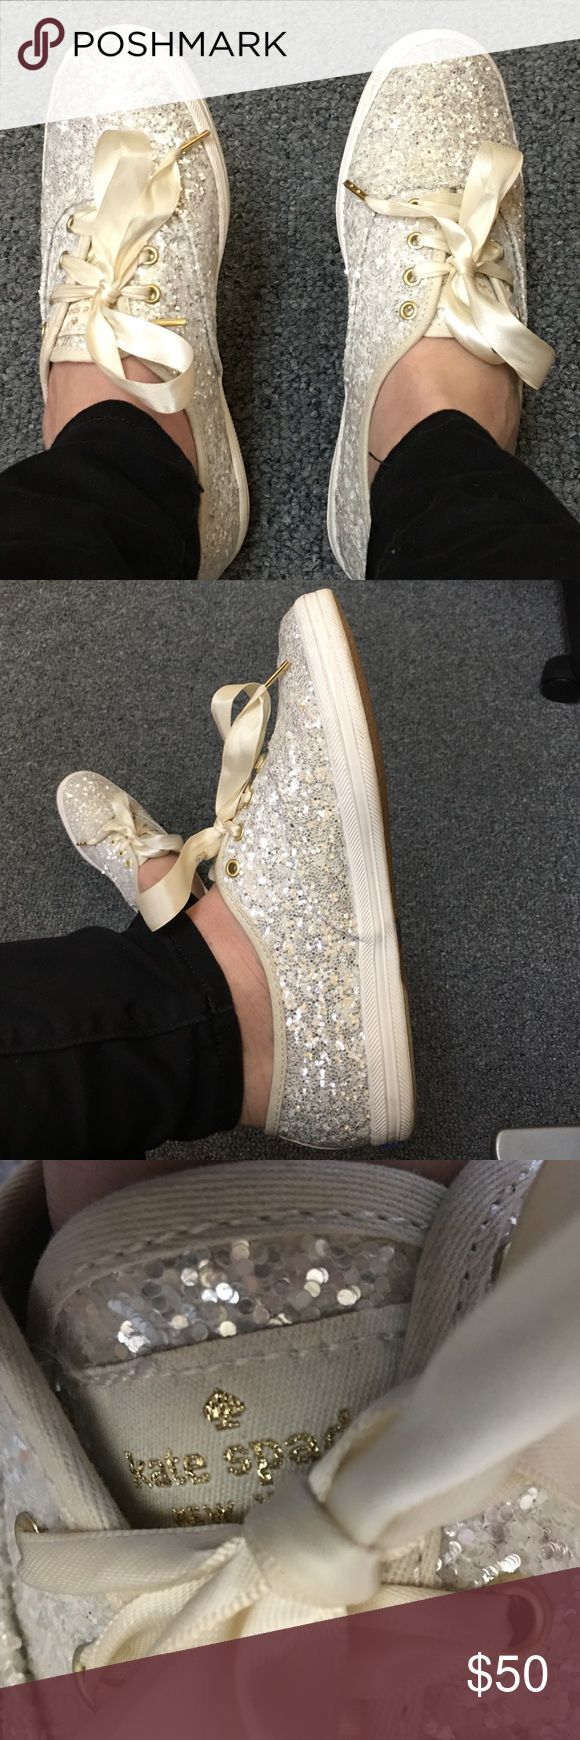 Kate Spade Glitter Keds sneakers I wore these beautiful Kate Spade glitter Keds on my wedding day and was dancing in comfort all night. These are super comfortable sneakers, have only been worn a few times and would be a great addition to any wardrobe! Keds Shoes Sneakers